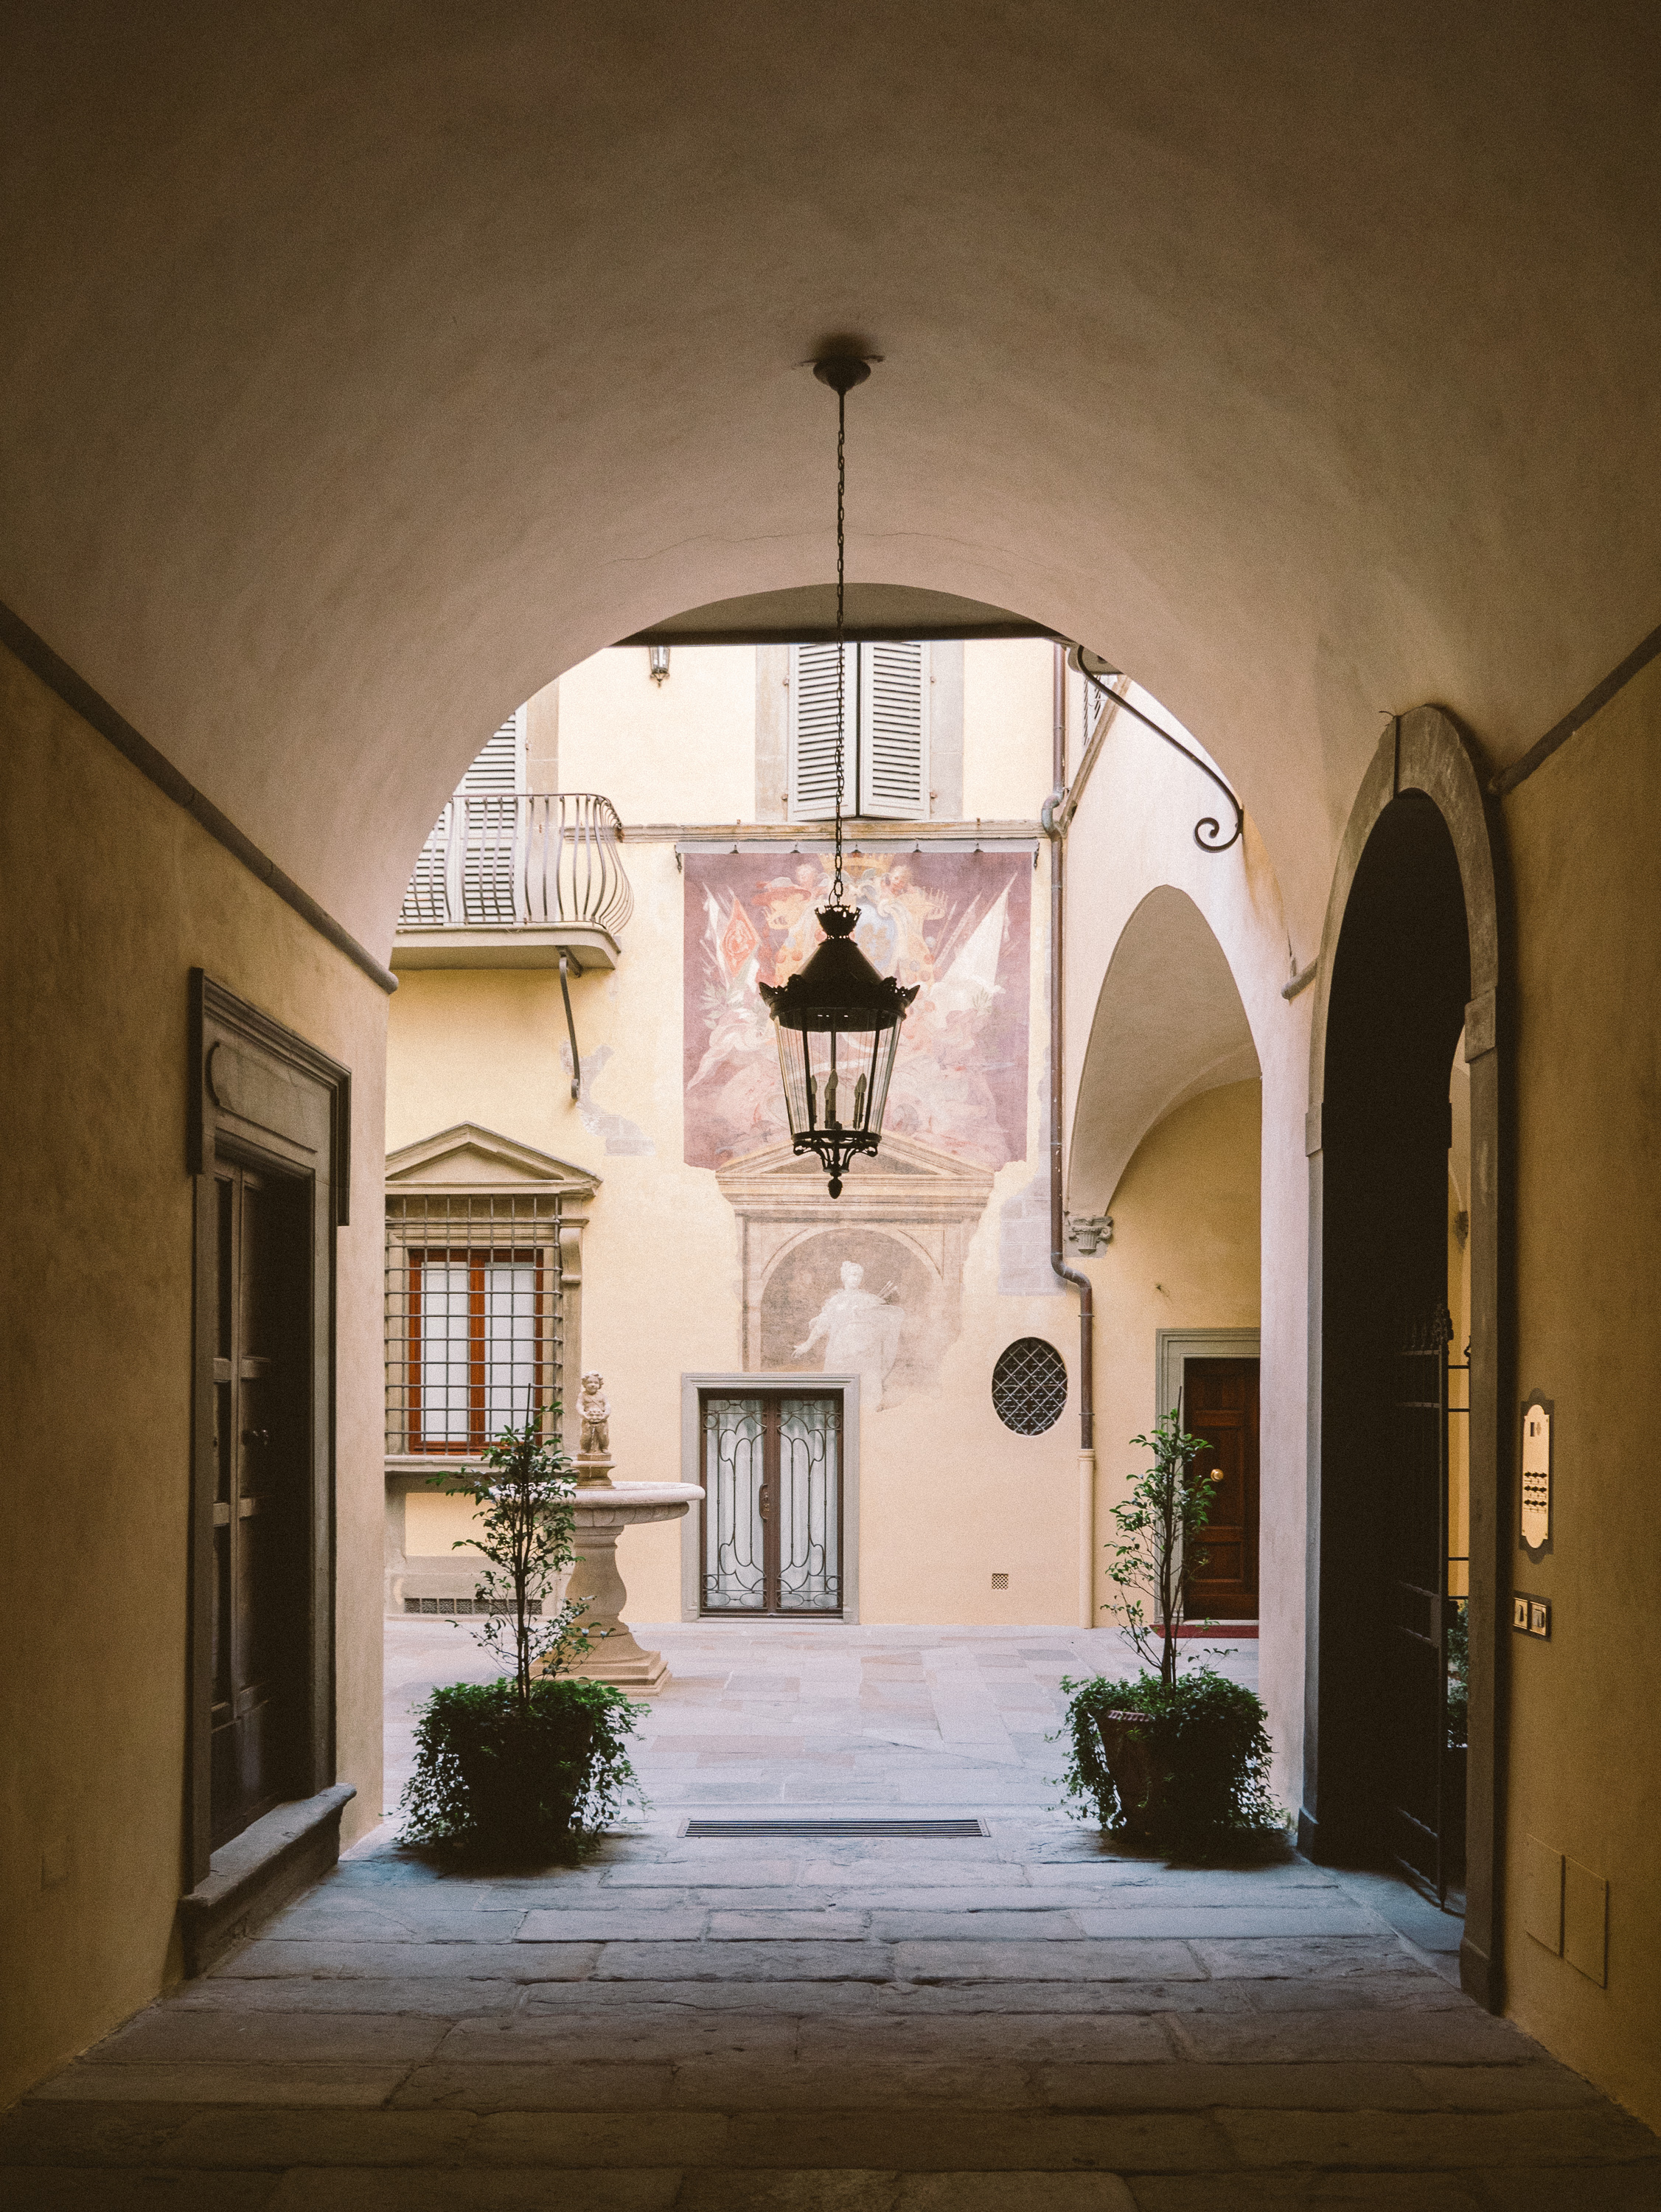 fat_creative_travel_blog_3_things_you_should_know_when_visiting_florence-52.jpg